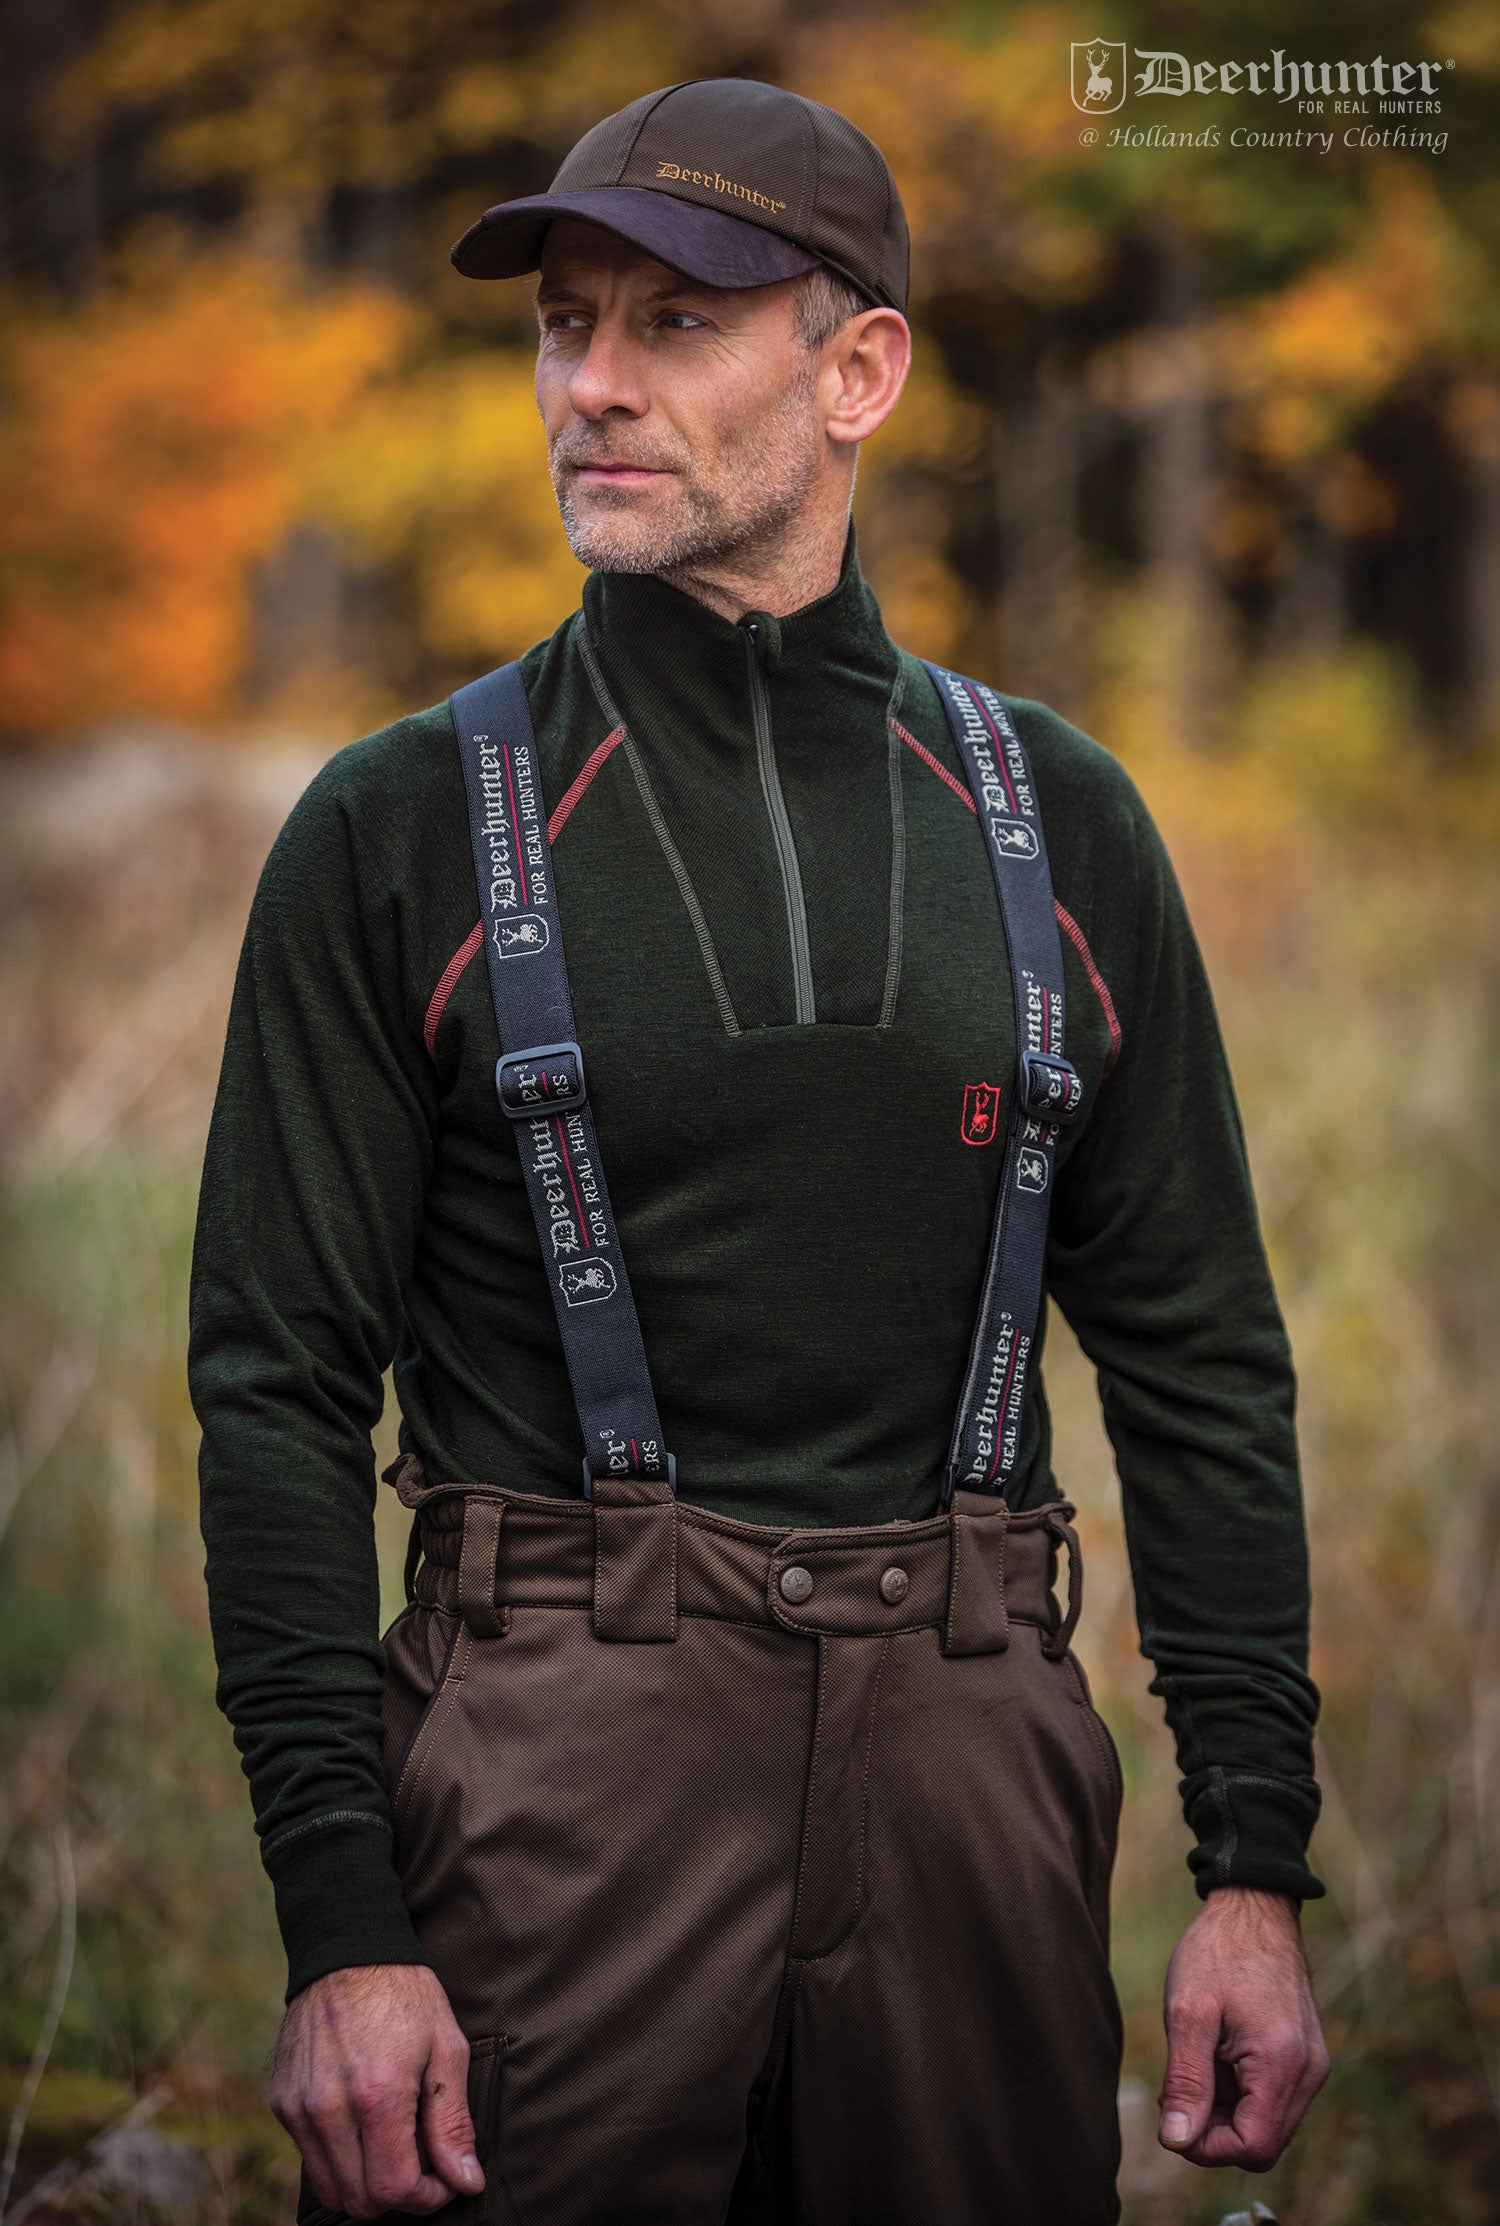 Muflon Waterproof Trousers by Deerhunter for shooting and outdoors